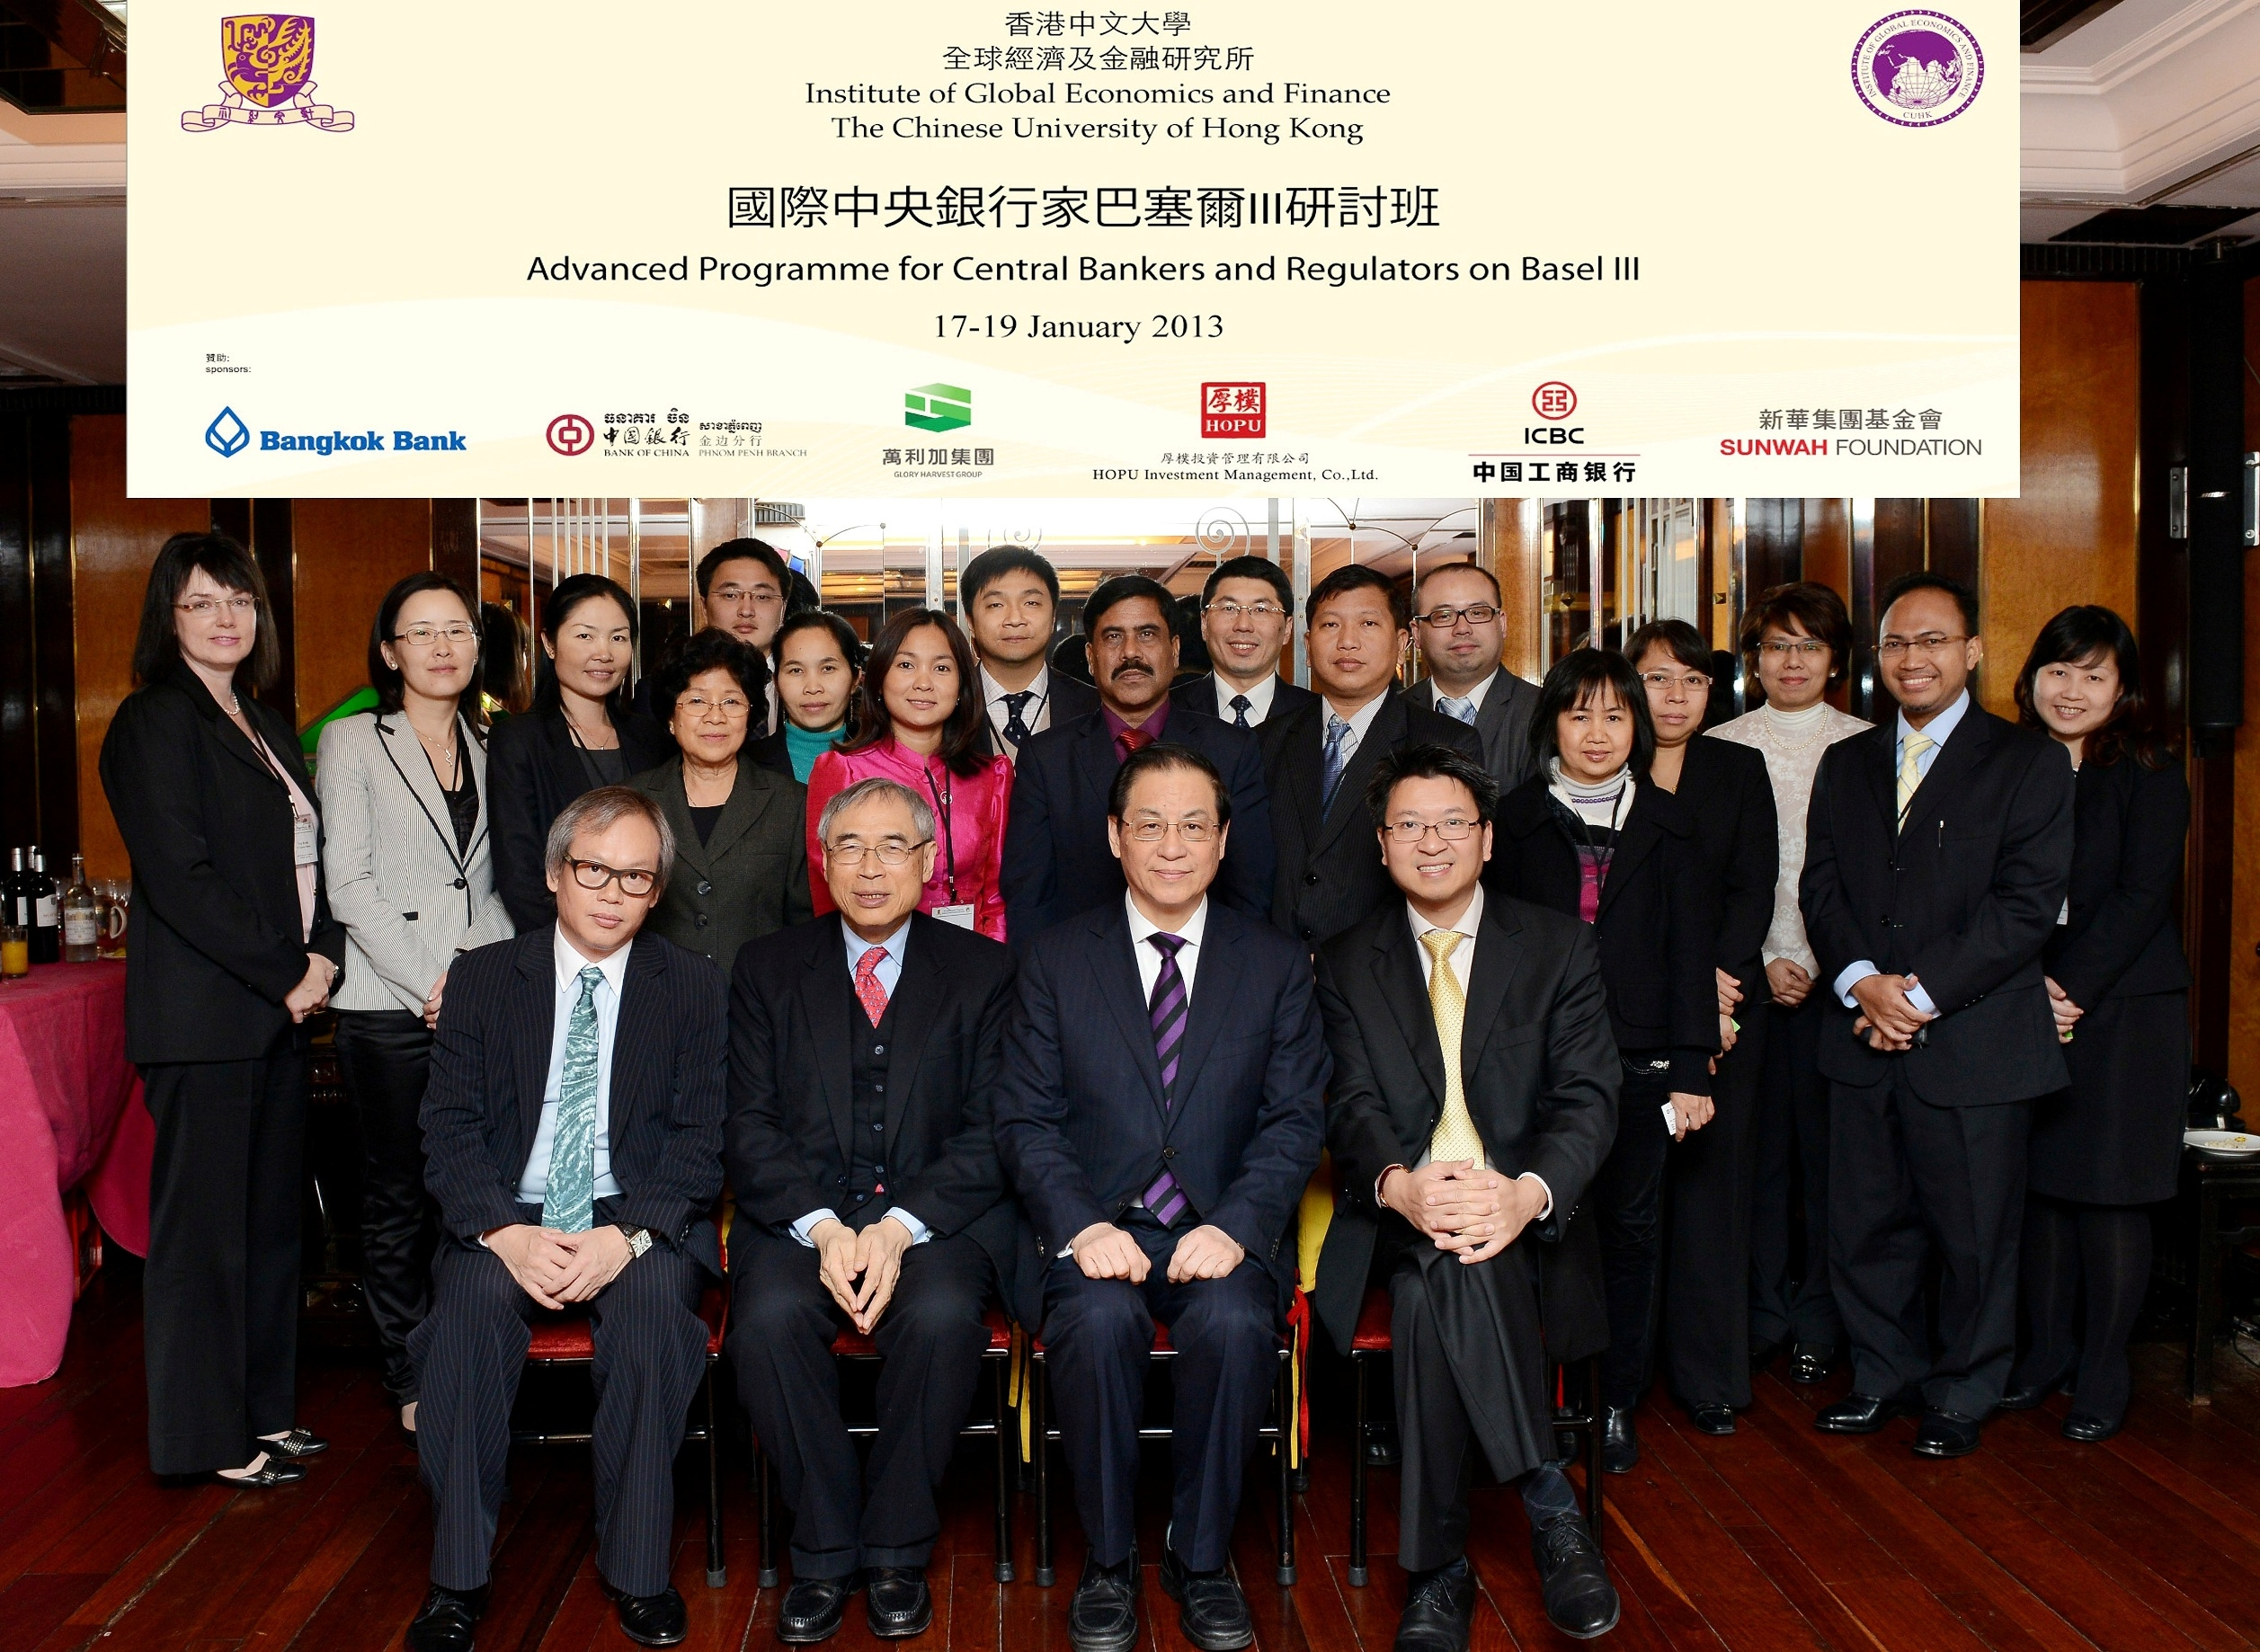 (Front row from left) Mr Li Wei Bo, Chairman of Glory Harvest Group Holdings Limited; Professor Lawrence J. Lau, former Vice-Chancellor and Ralph and Claire Landau Professor of Economics, CUHK; Professor Liu Mingkang, former Chairman of the China Banking Regulatory Commission and BCT Distinguished Research Fellow of IGEF, CUHK; and Professor Chong Tai Leung, Executive Director of IGEF, CUHK, take a group photo with participants of the Advanced Programme for Central Bankers on Basel III.